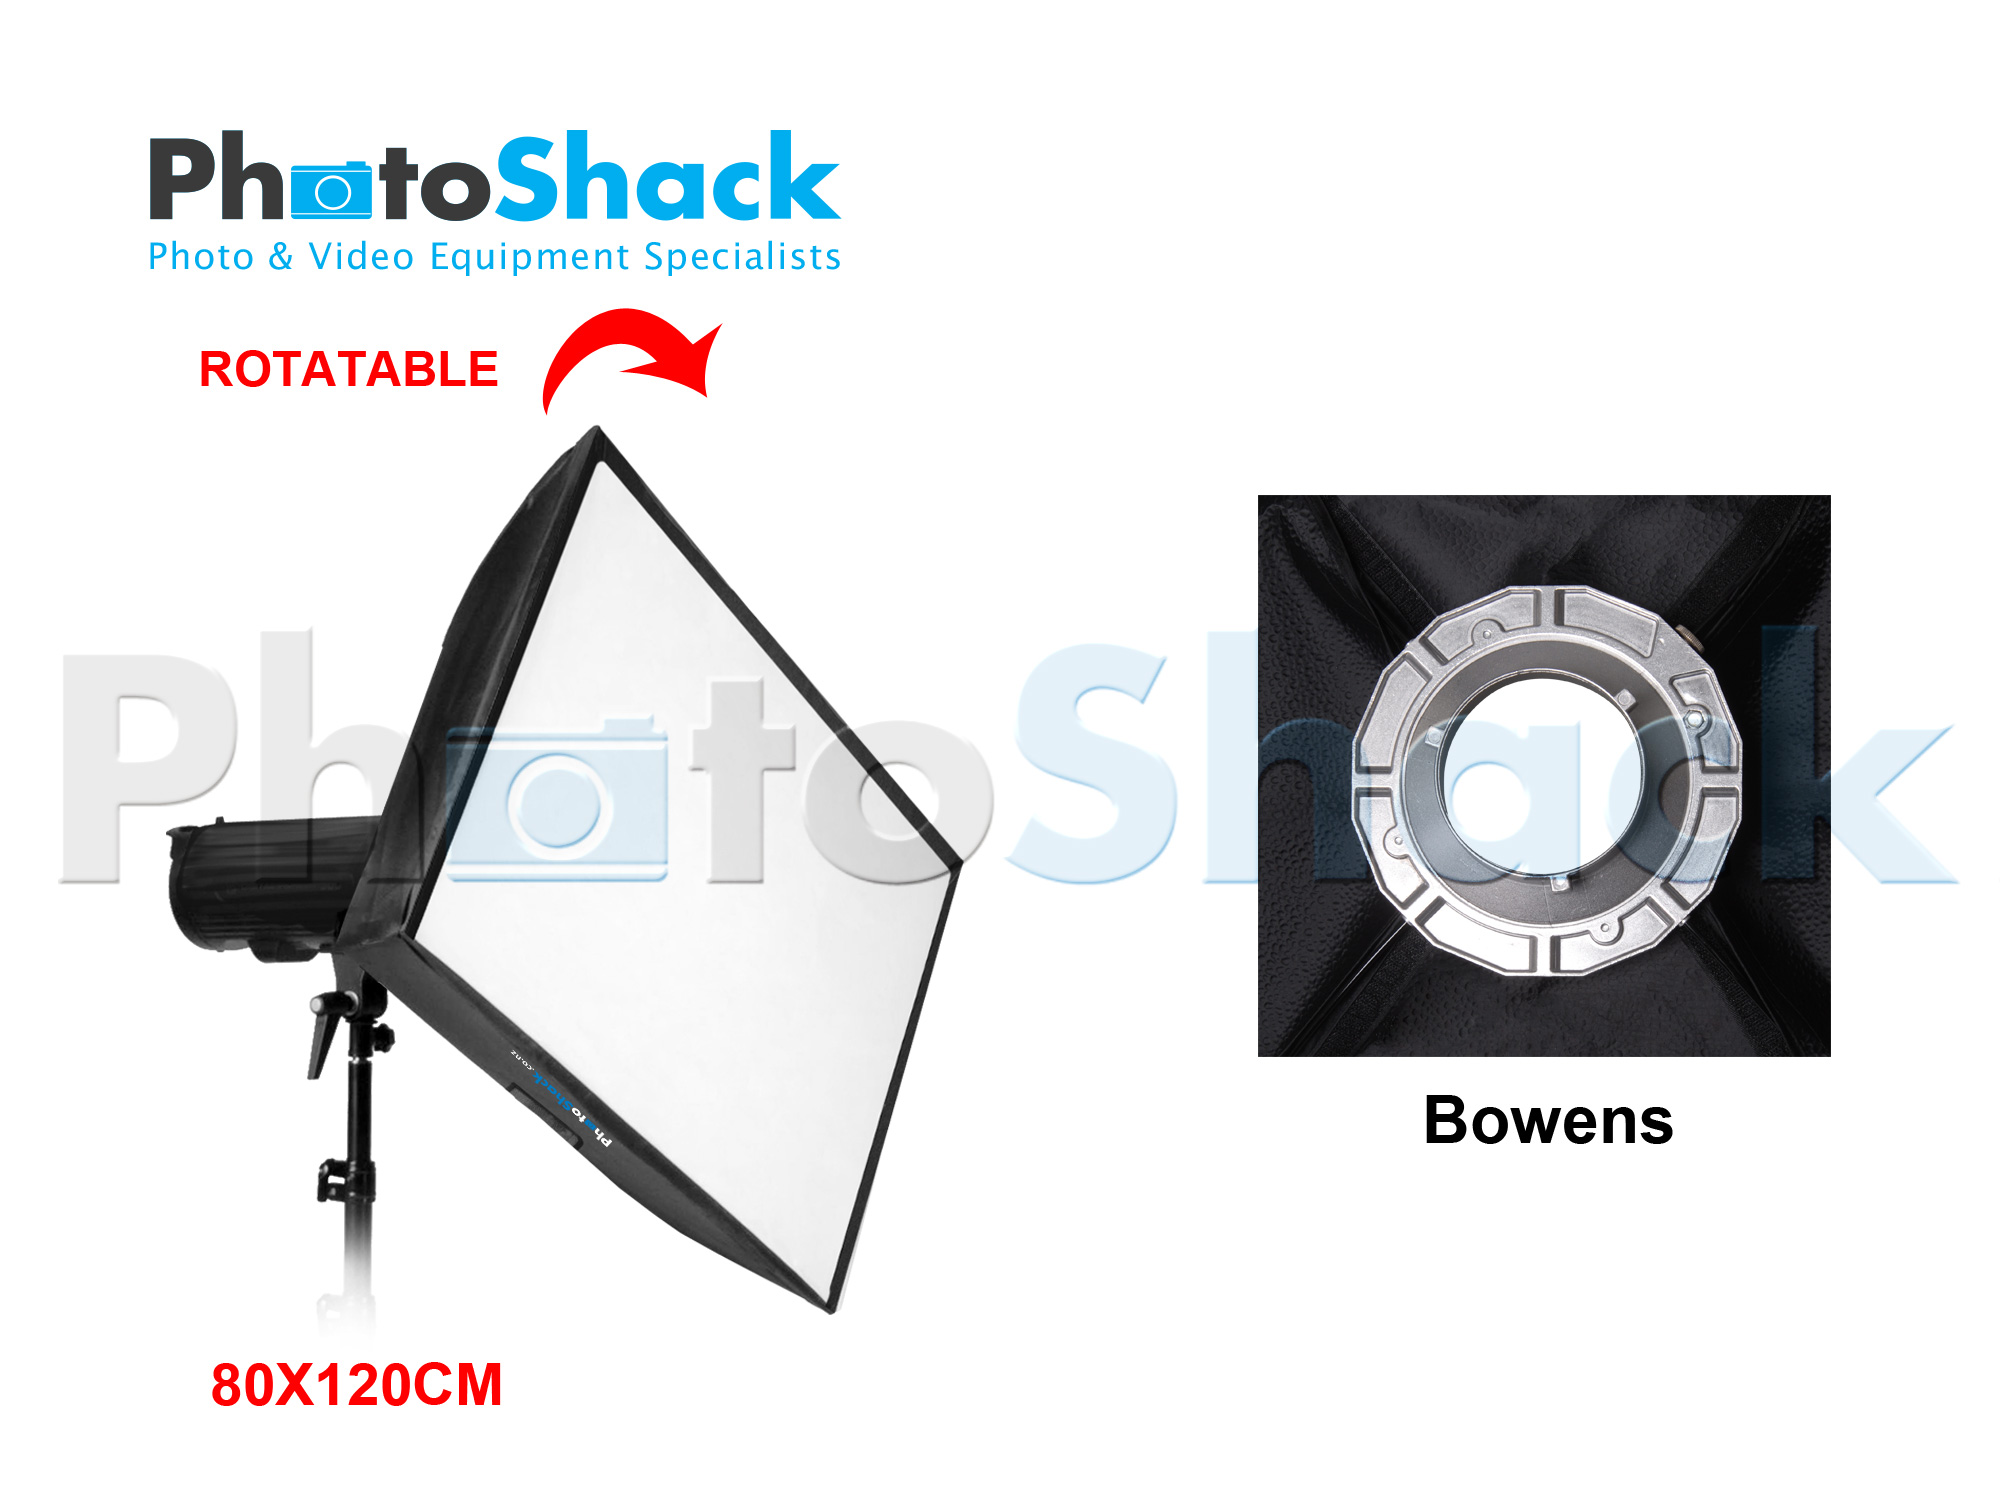 SOFTBOX for STUDIO LIGHT (80 x 120cm) - Bowens